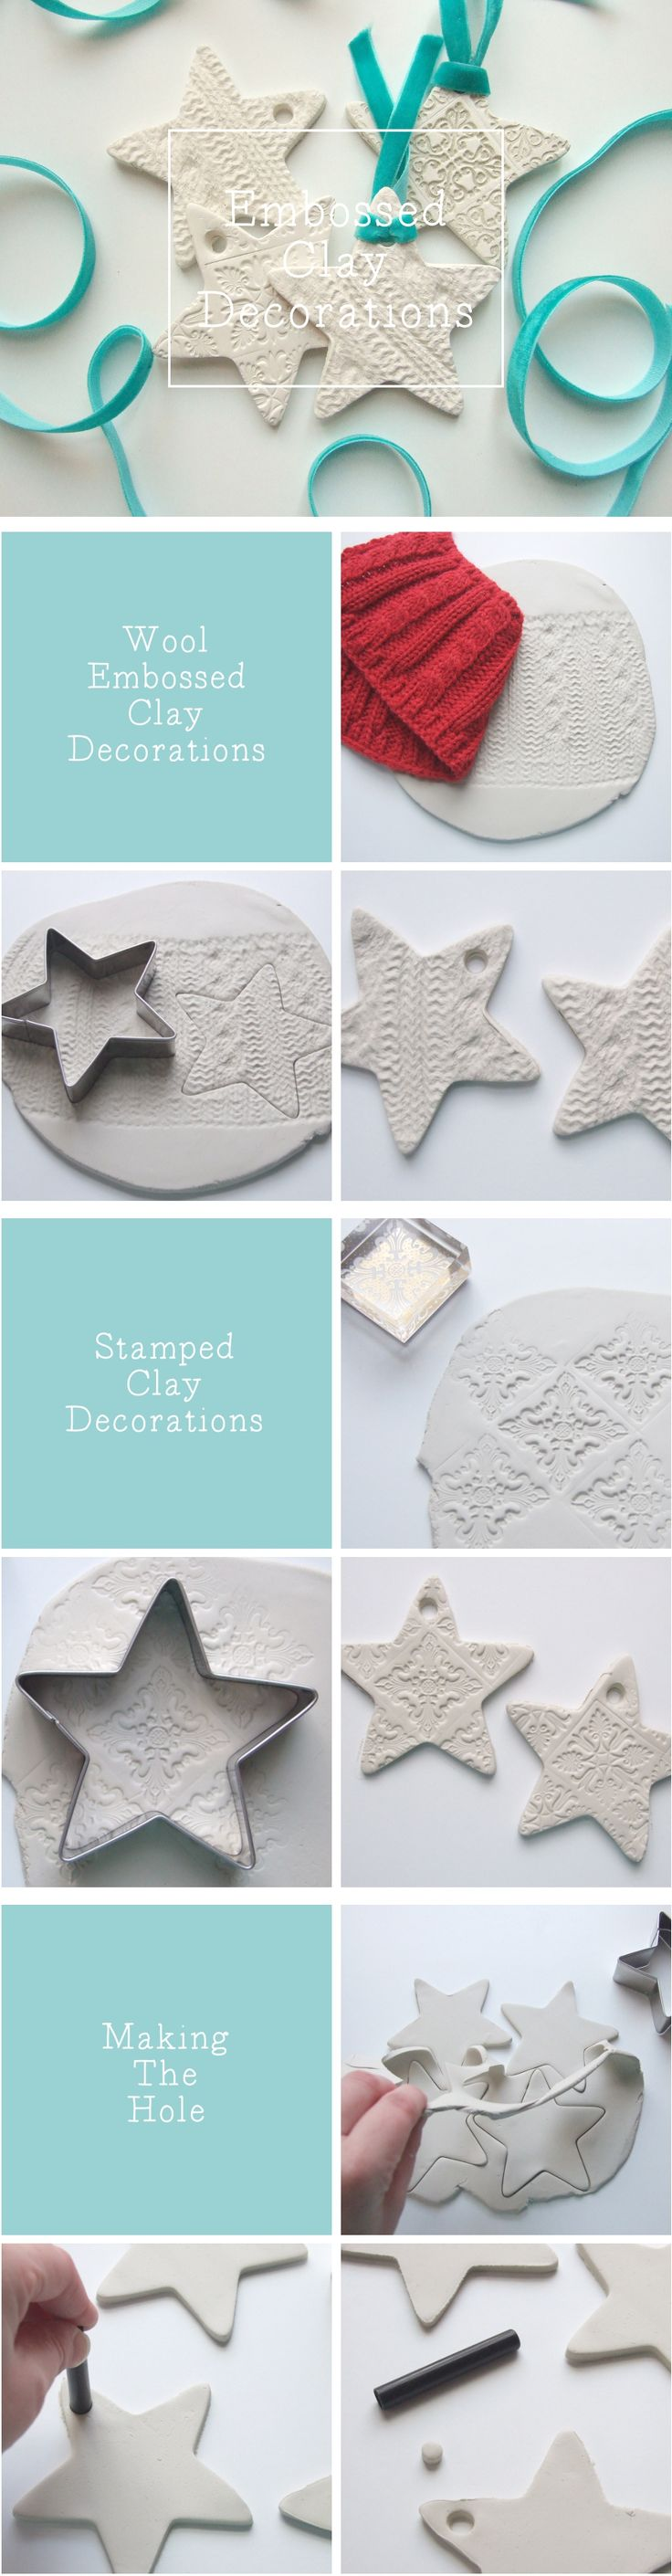 Wool embossed clay star decorations made using air dry clay.    Gloucestershire Resource Centre http://www.grcltd.org/scrapstore/